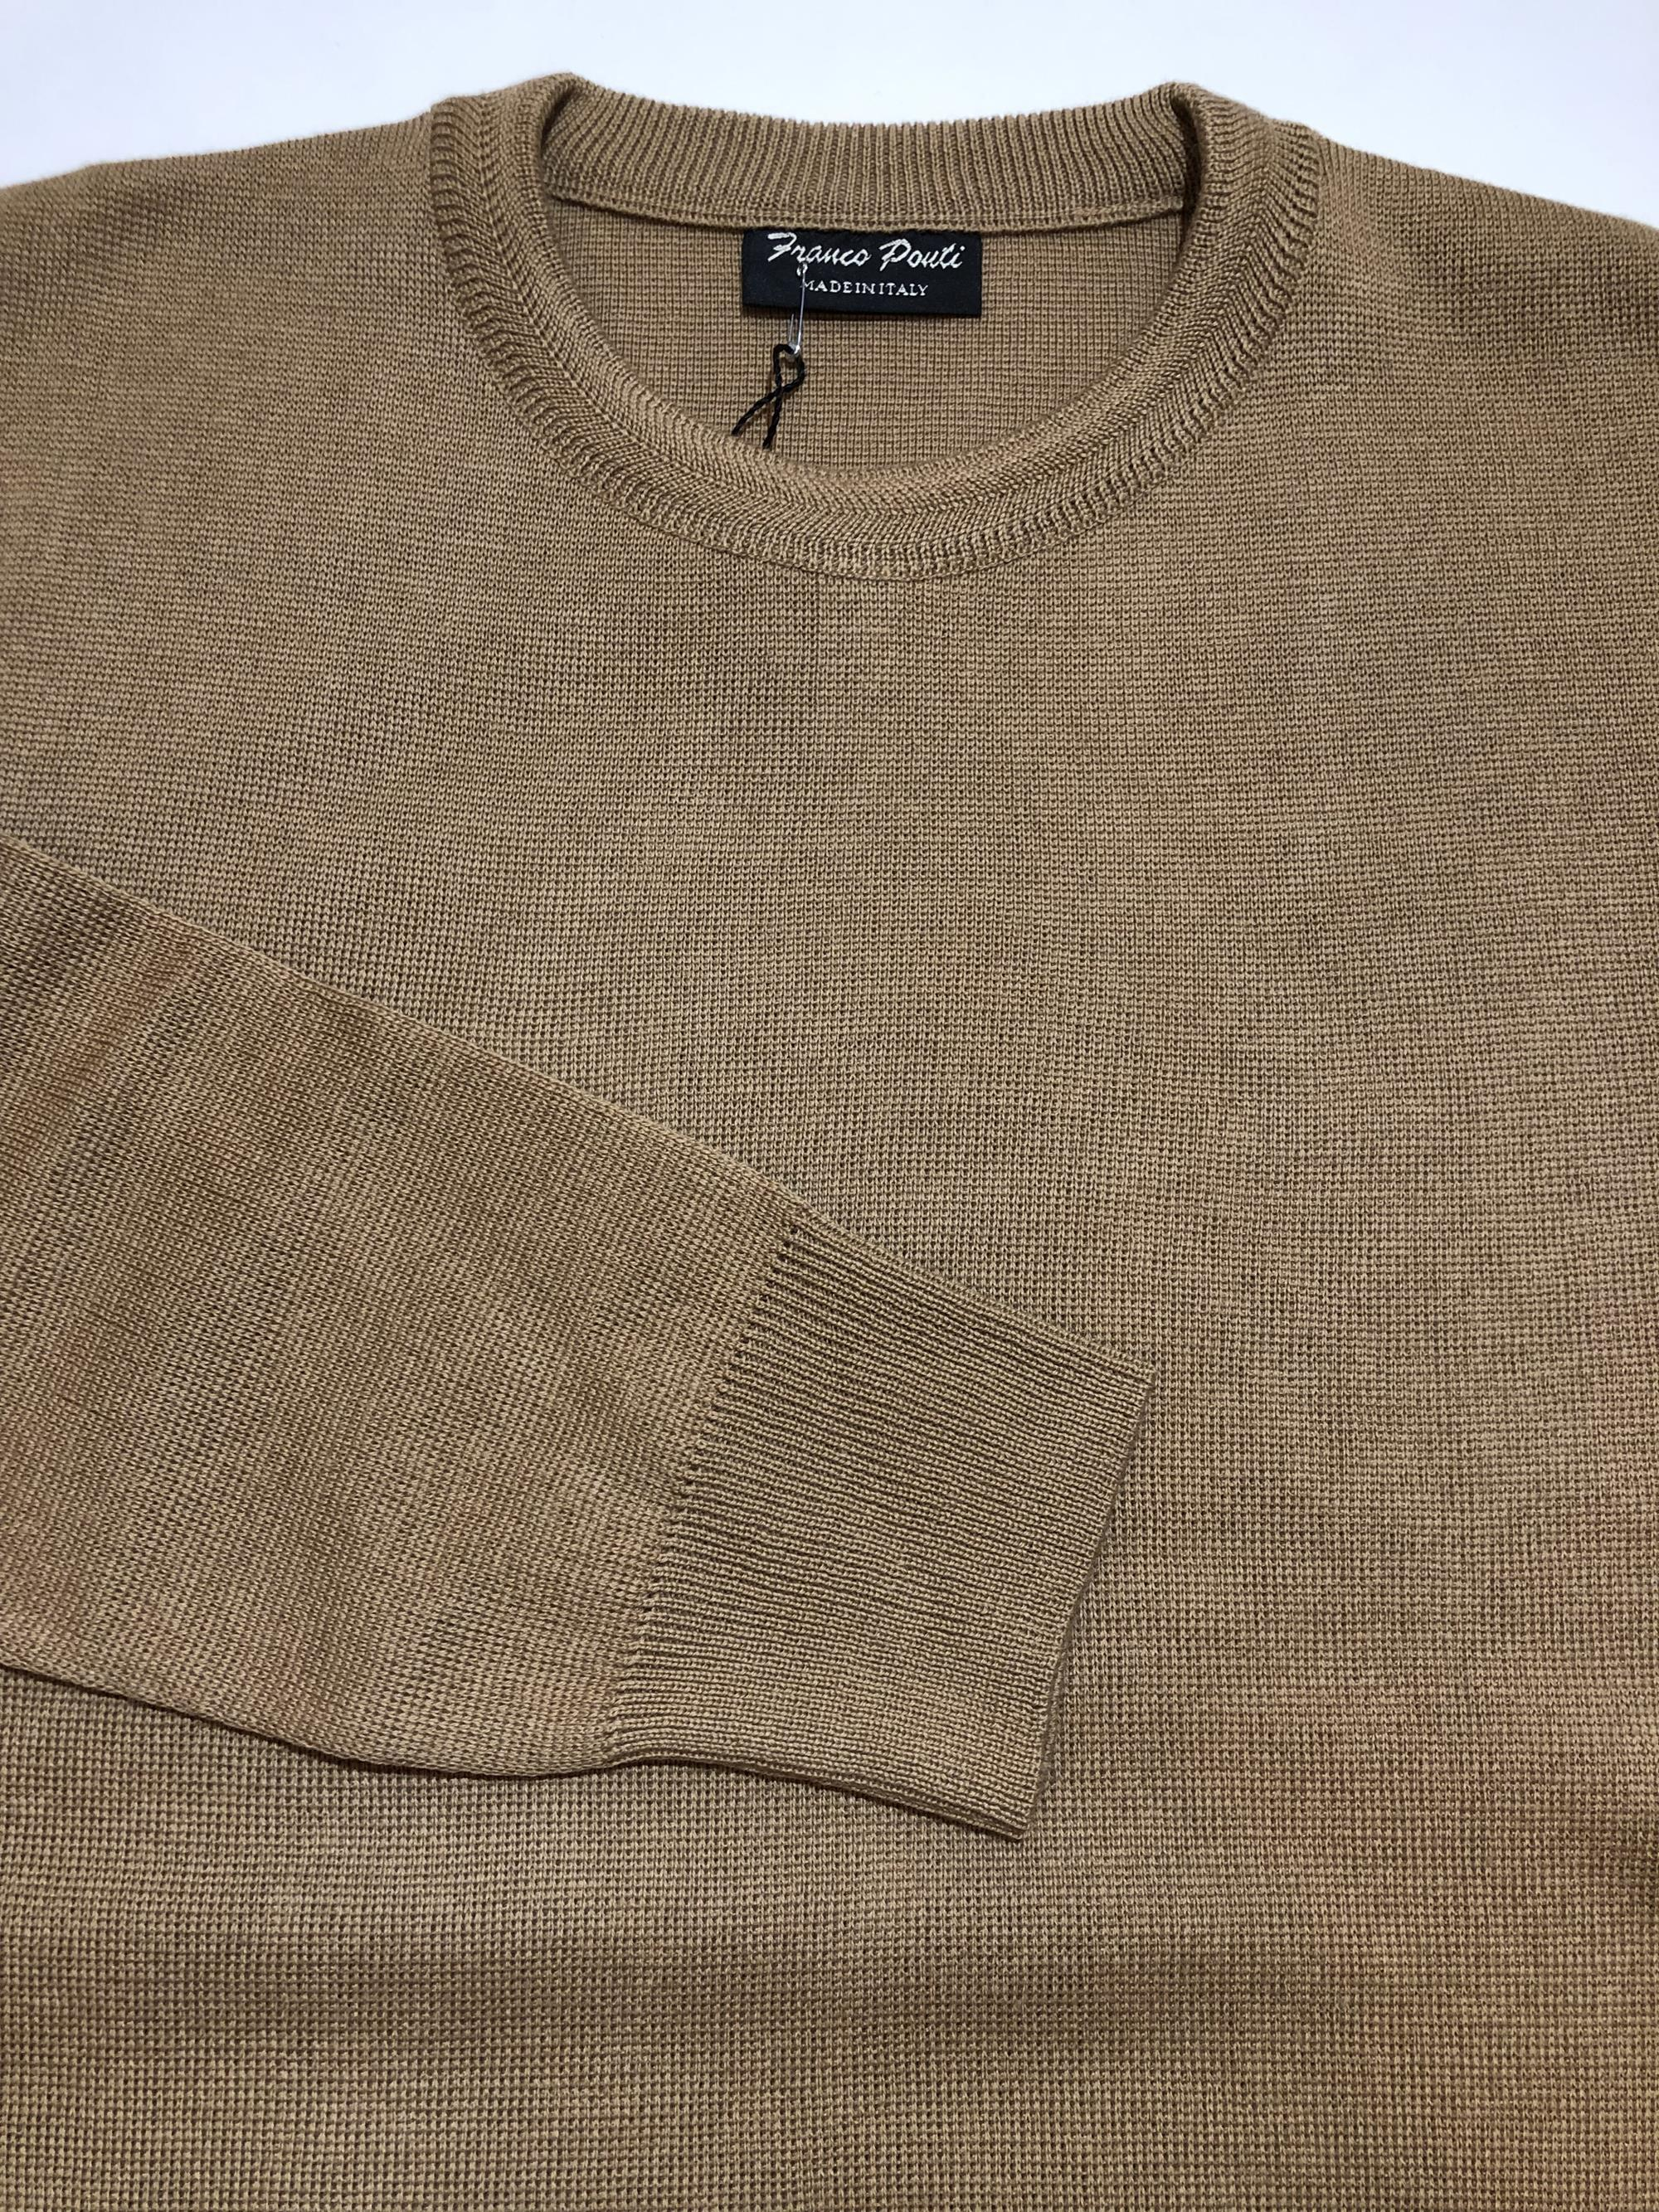 crew neck sweater (camel)